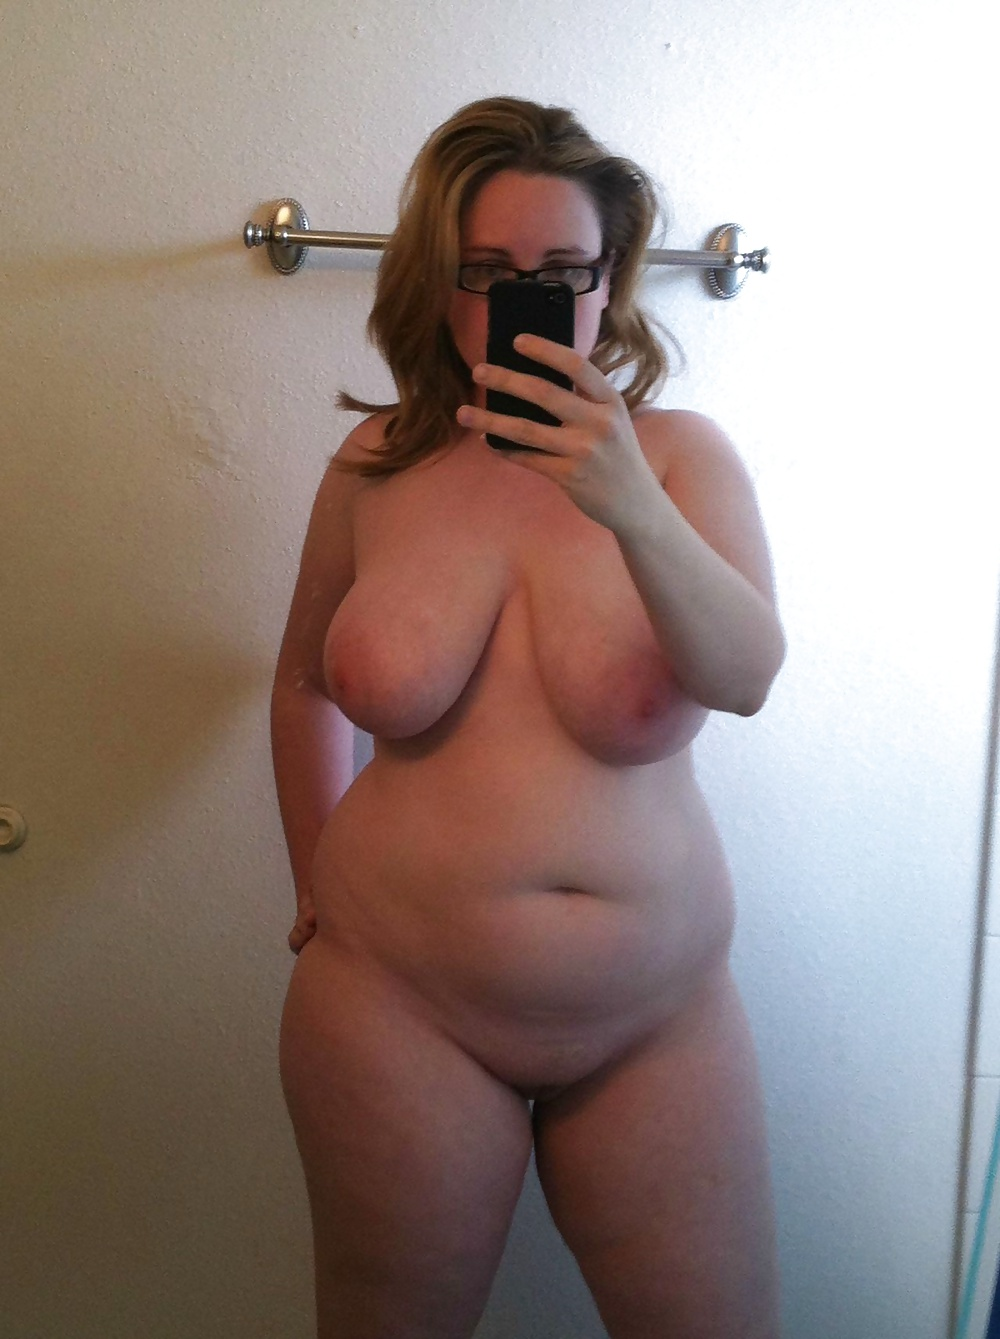 Hearts naked bbws self pic pussy upclose christine